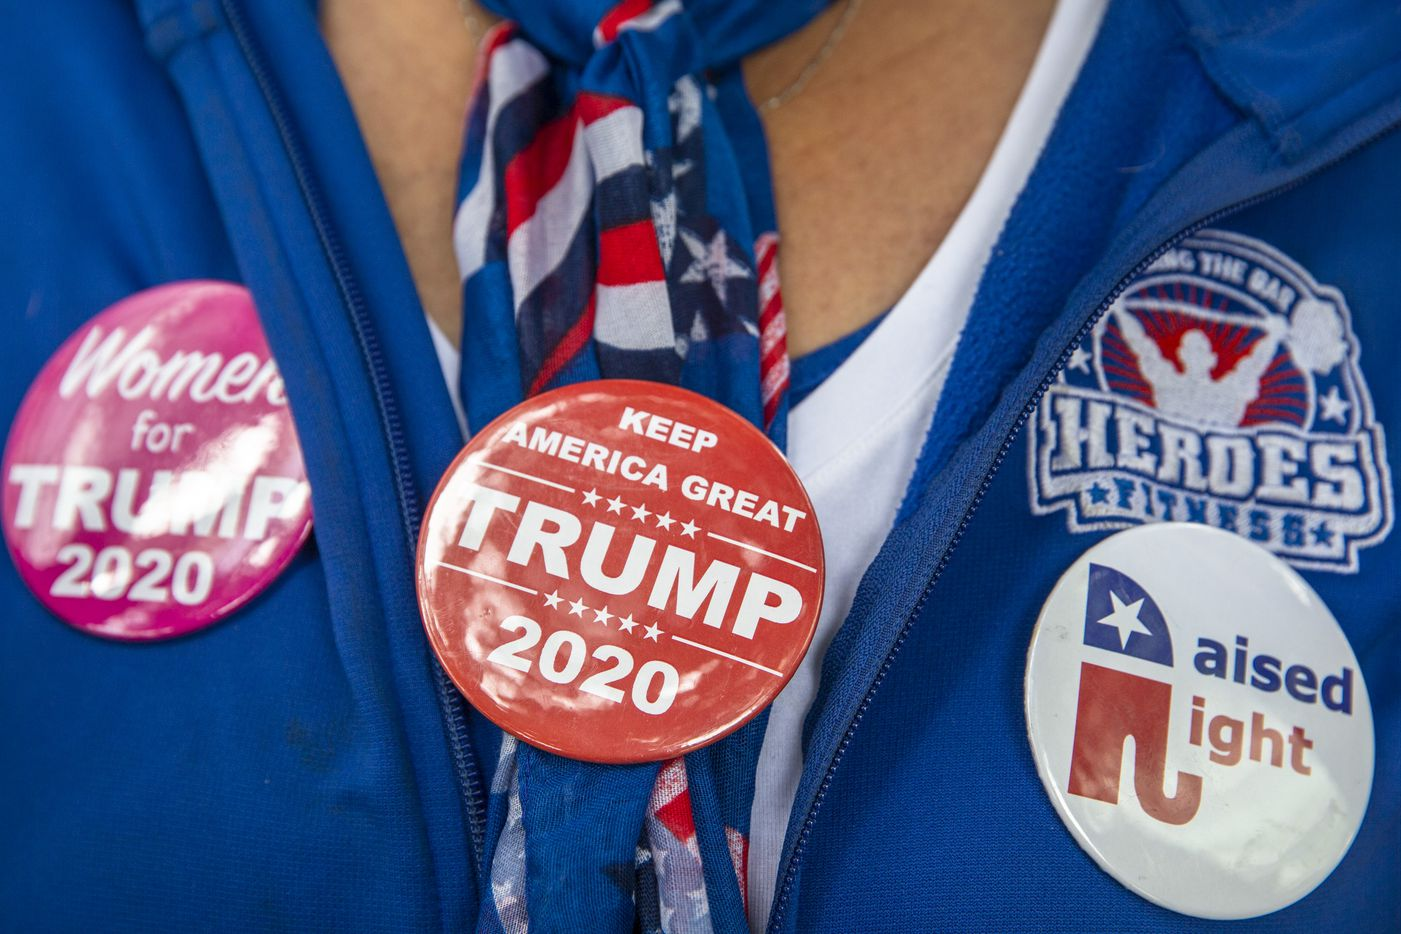 A supporter of President Donald Trump wears her new pins while camping out in line in front of the American Airlines Center in Dallas on Wednesday, Oct. 16, 2019. President Trump will host a rally at the center on Thursday evening.